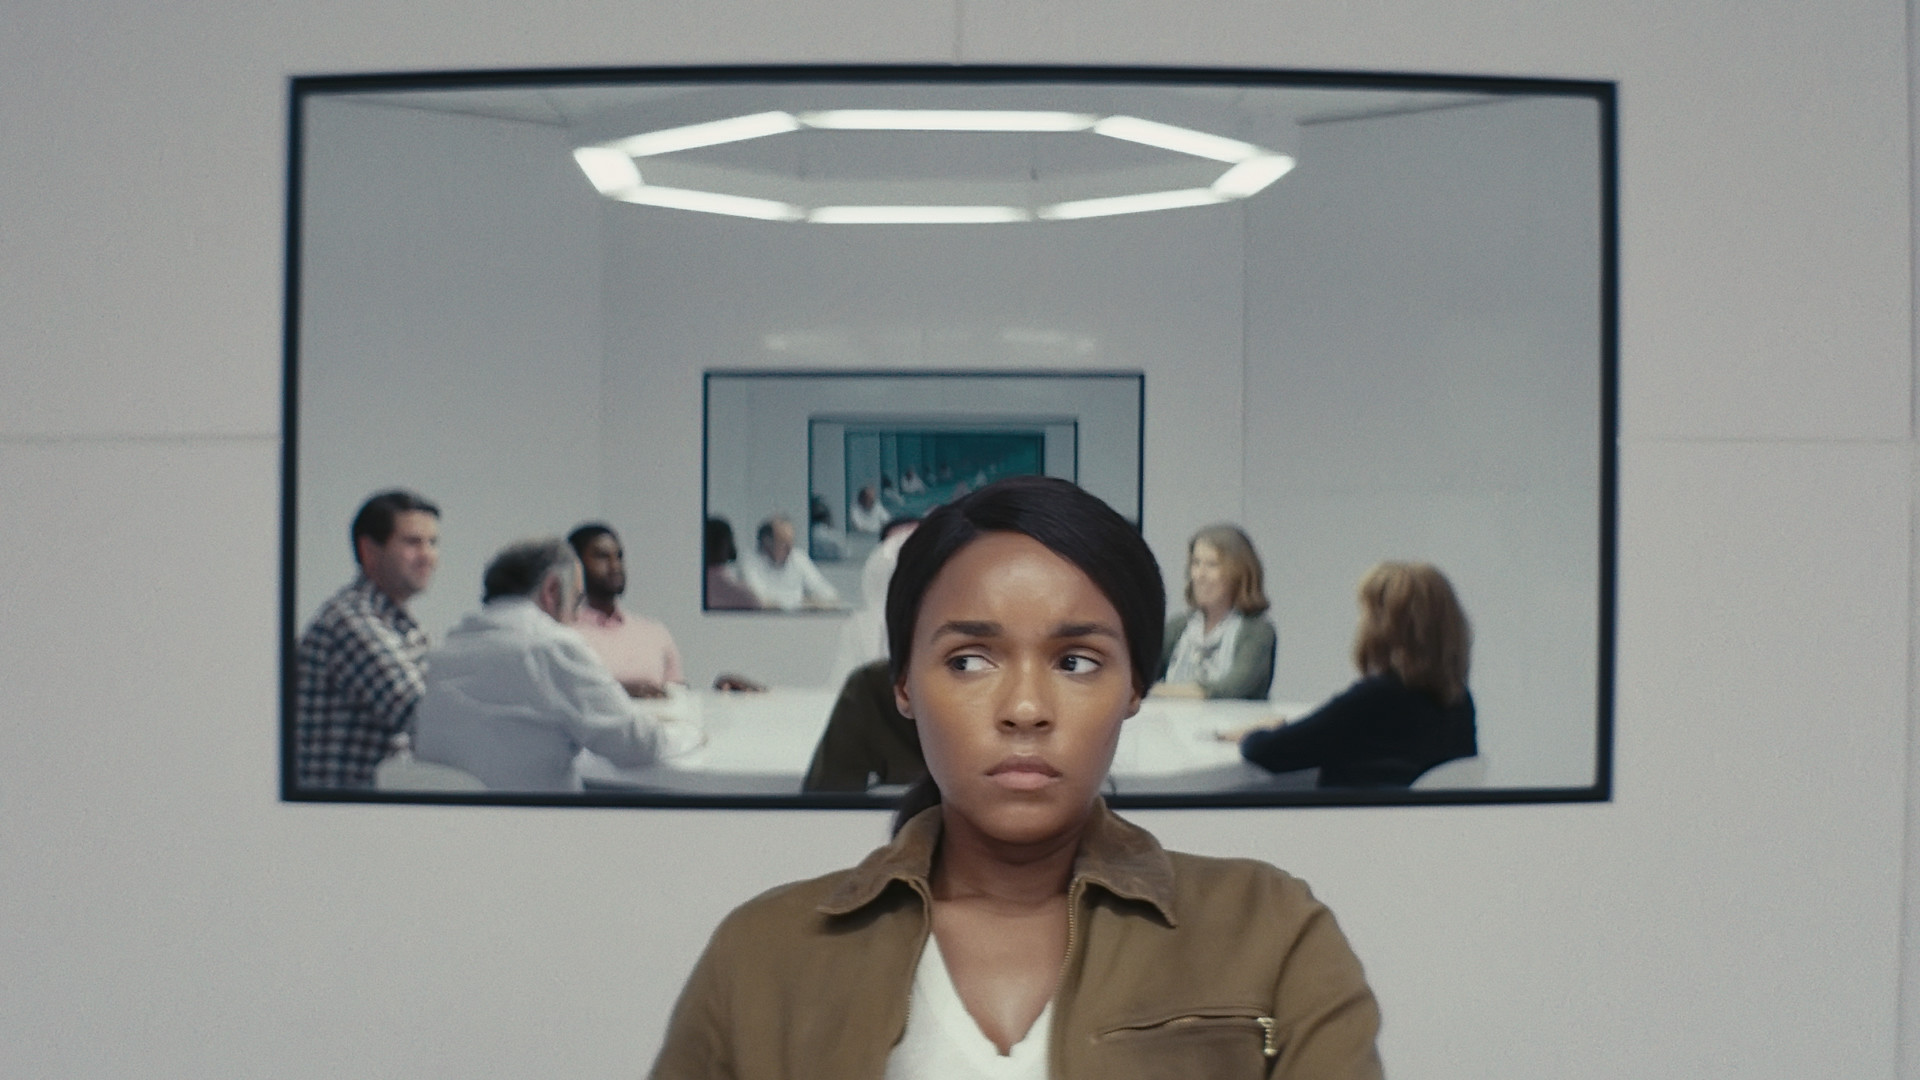 Janelle Monáe in Homecoming 2